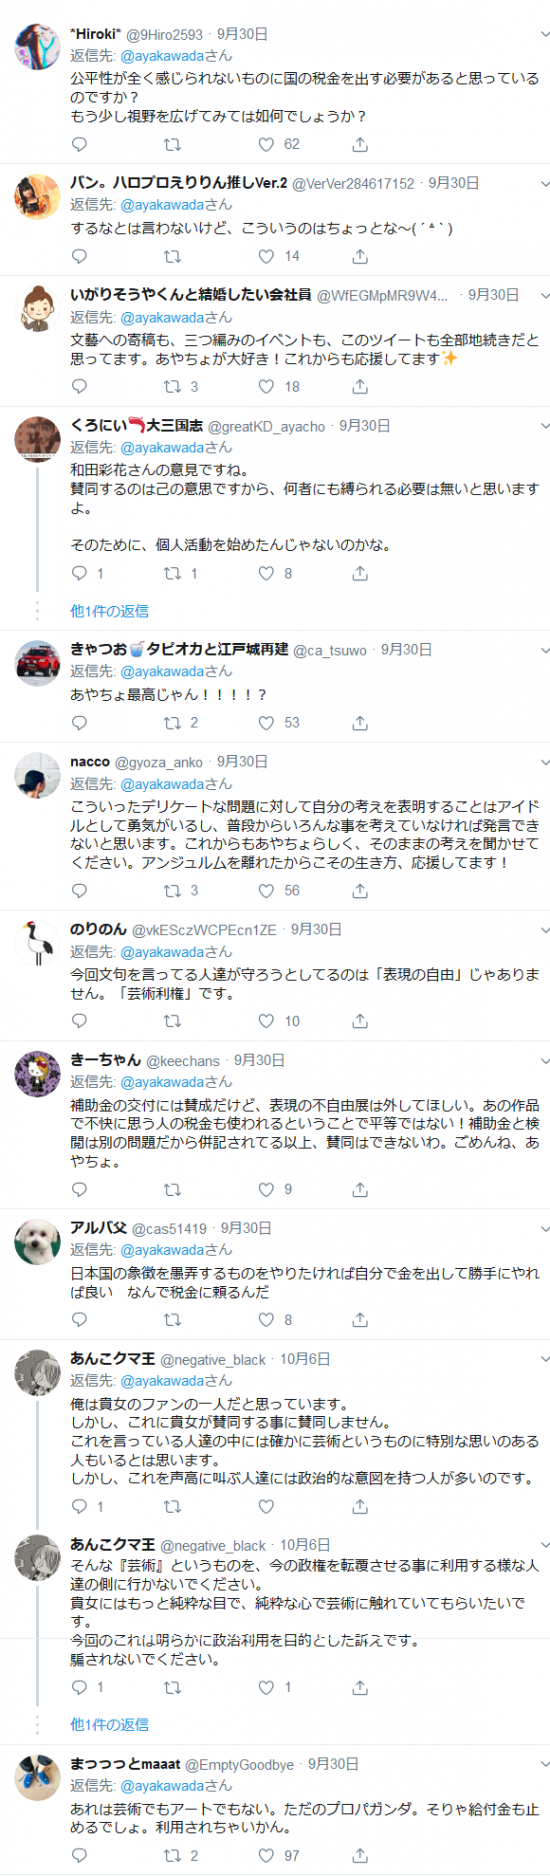 Screenshot_2019-10-08 和田彩花さんはTwitterを使っています 「https t co F0asyH3GNh」 Twitter.png